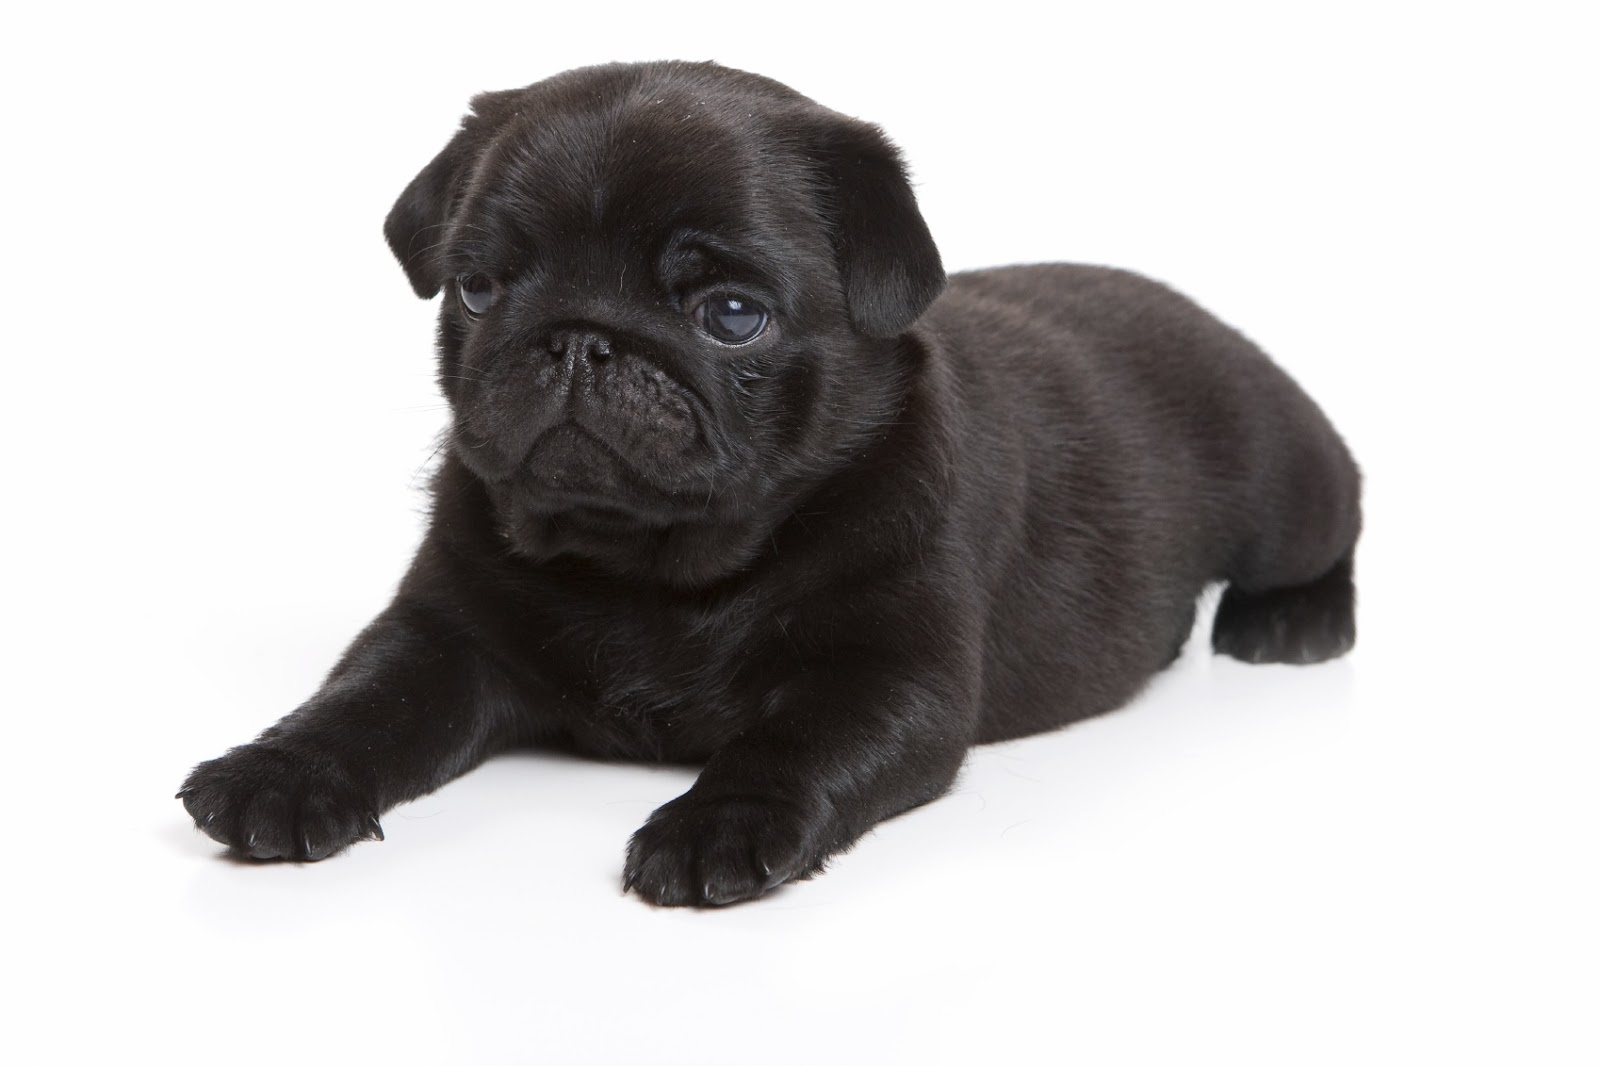 Cute Puppy Dogs Black Pug Puppies